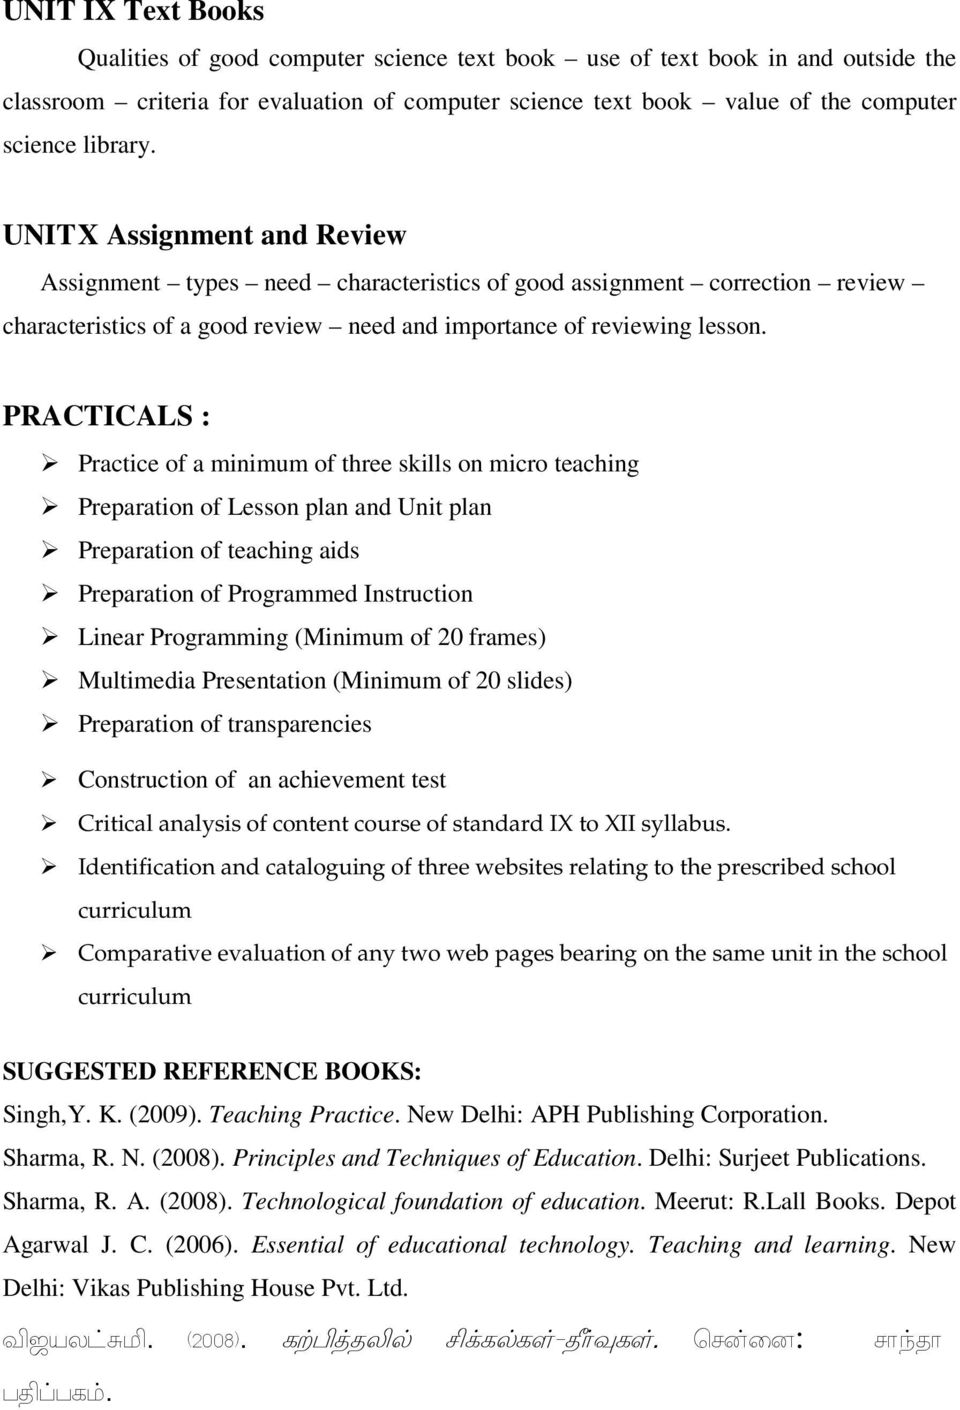 PRACTICALS : Practice of a minimum of three skills on micro teaching Preparation of Lesson plan and Unit plan Preparation of teaching aids Preparation of Programmed Instruction Linear Programming